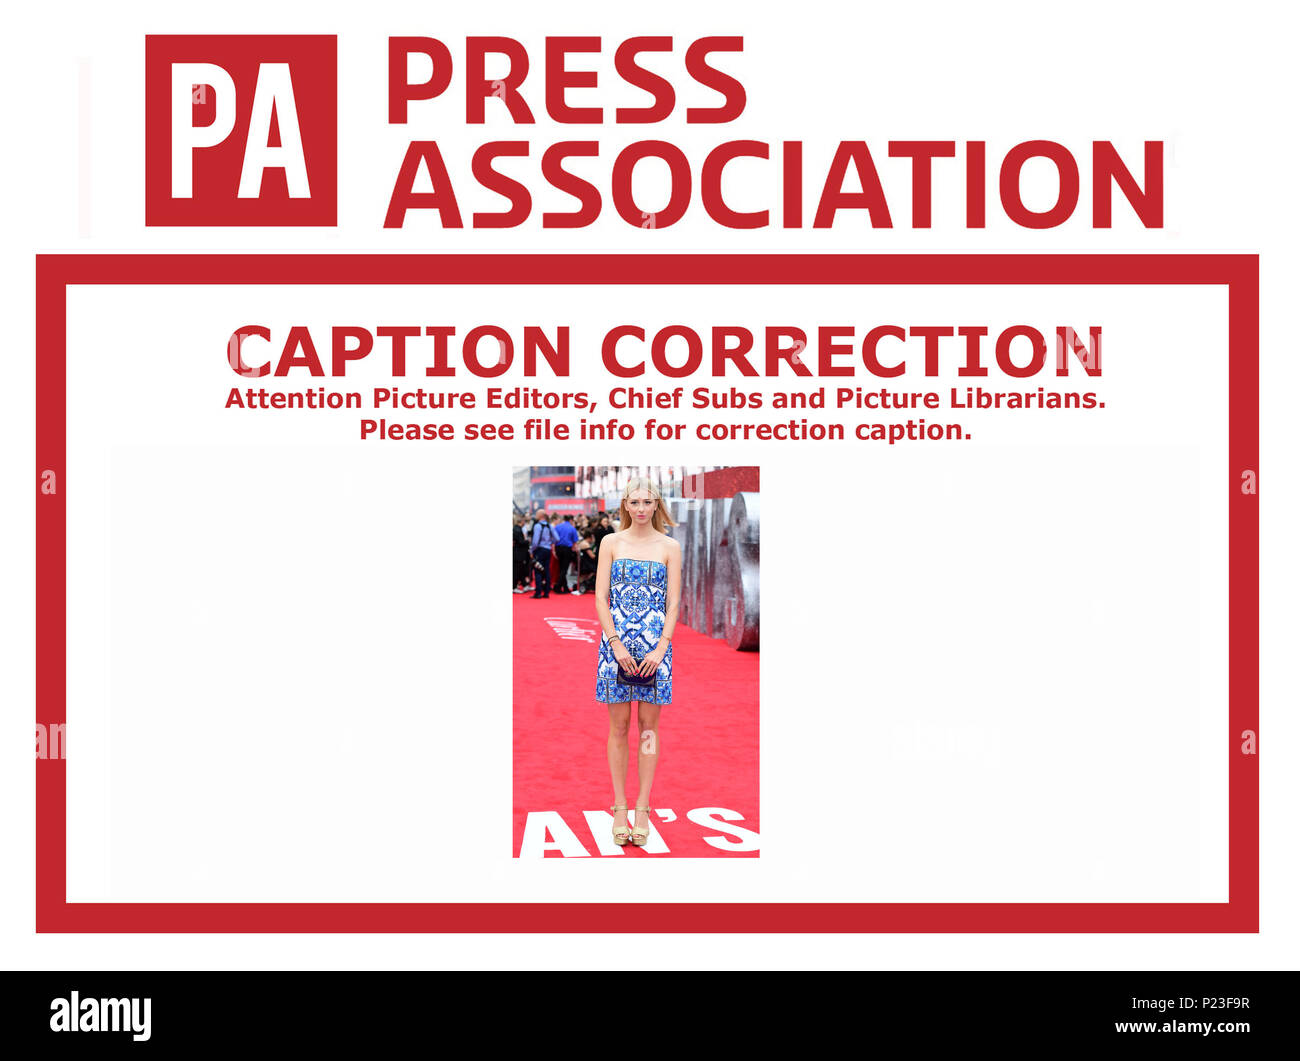 CAPTION CORRECTION CHANGING NAME OF PERSON IN IMAGE. IMAGES WILL BE RETRANSMITTED SHORTLY WITH CORRECTED NAME CORRECT CAPTION SHOULD READ Isabel Getty attending the European premiere of Oceans 8, held at the Cineworld in Leicester Square, London. - Stock Image